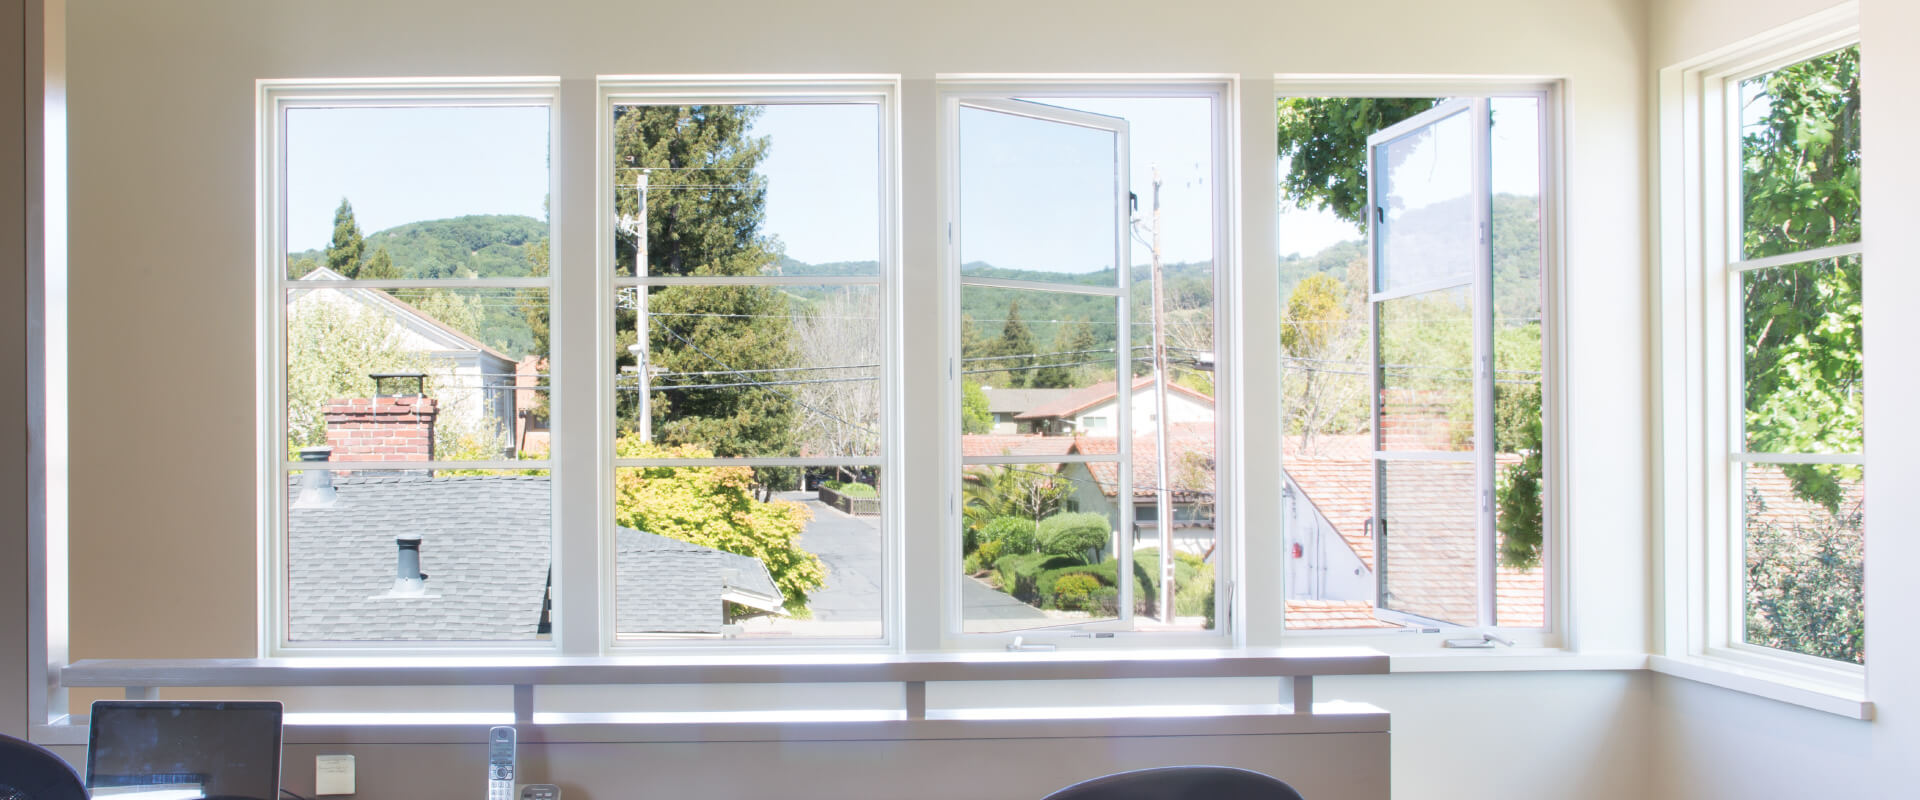 VistaLuxe Collection casement windows cranked open.